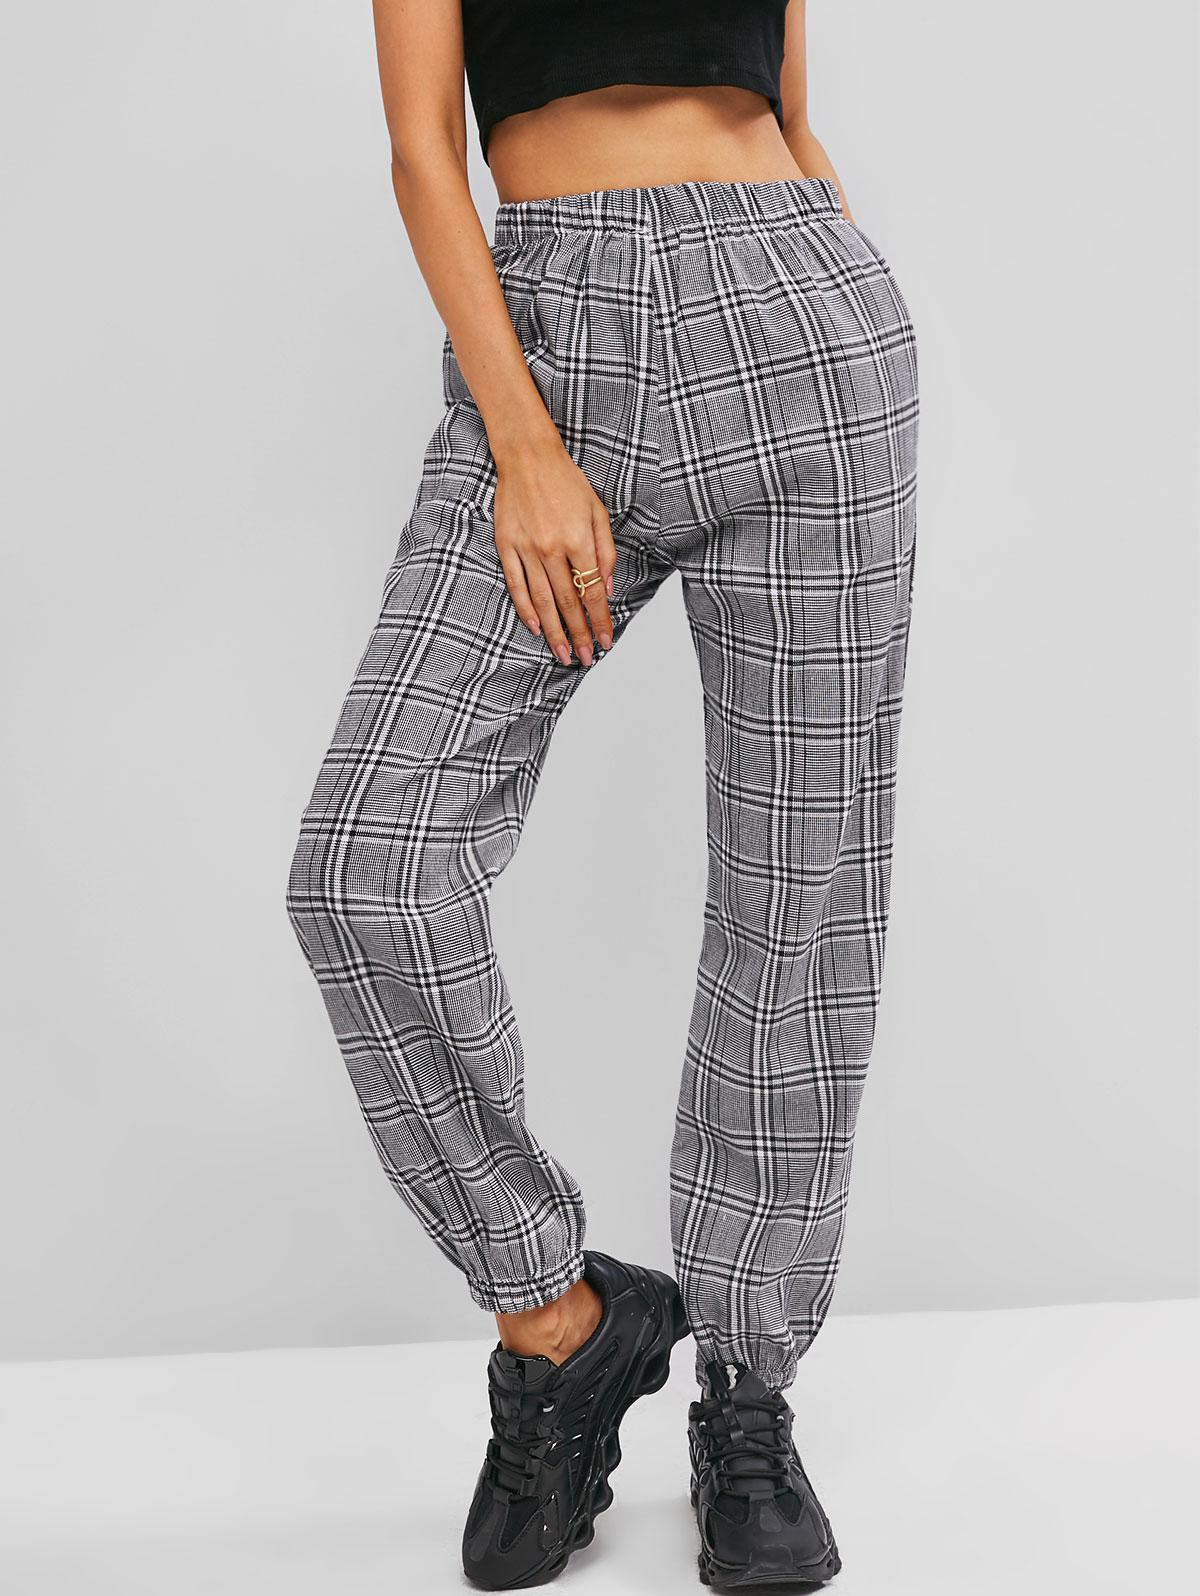 High Waisted Seam Pockets Plaid Jogger Pants